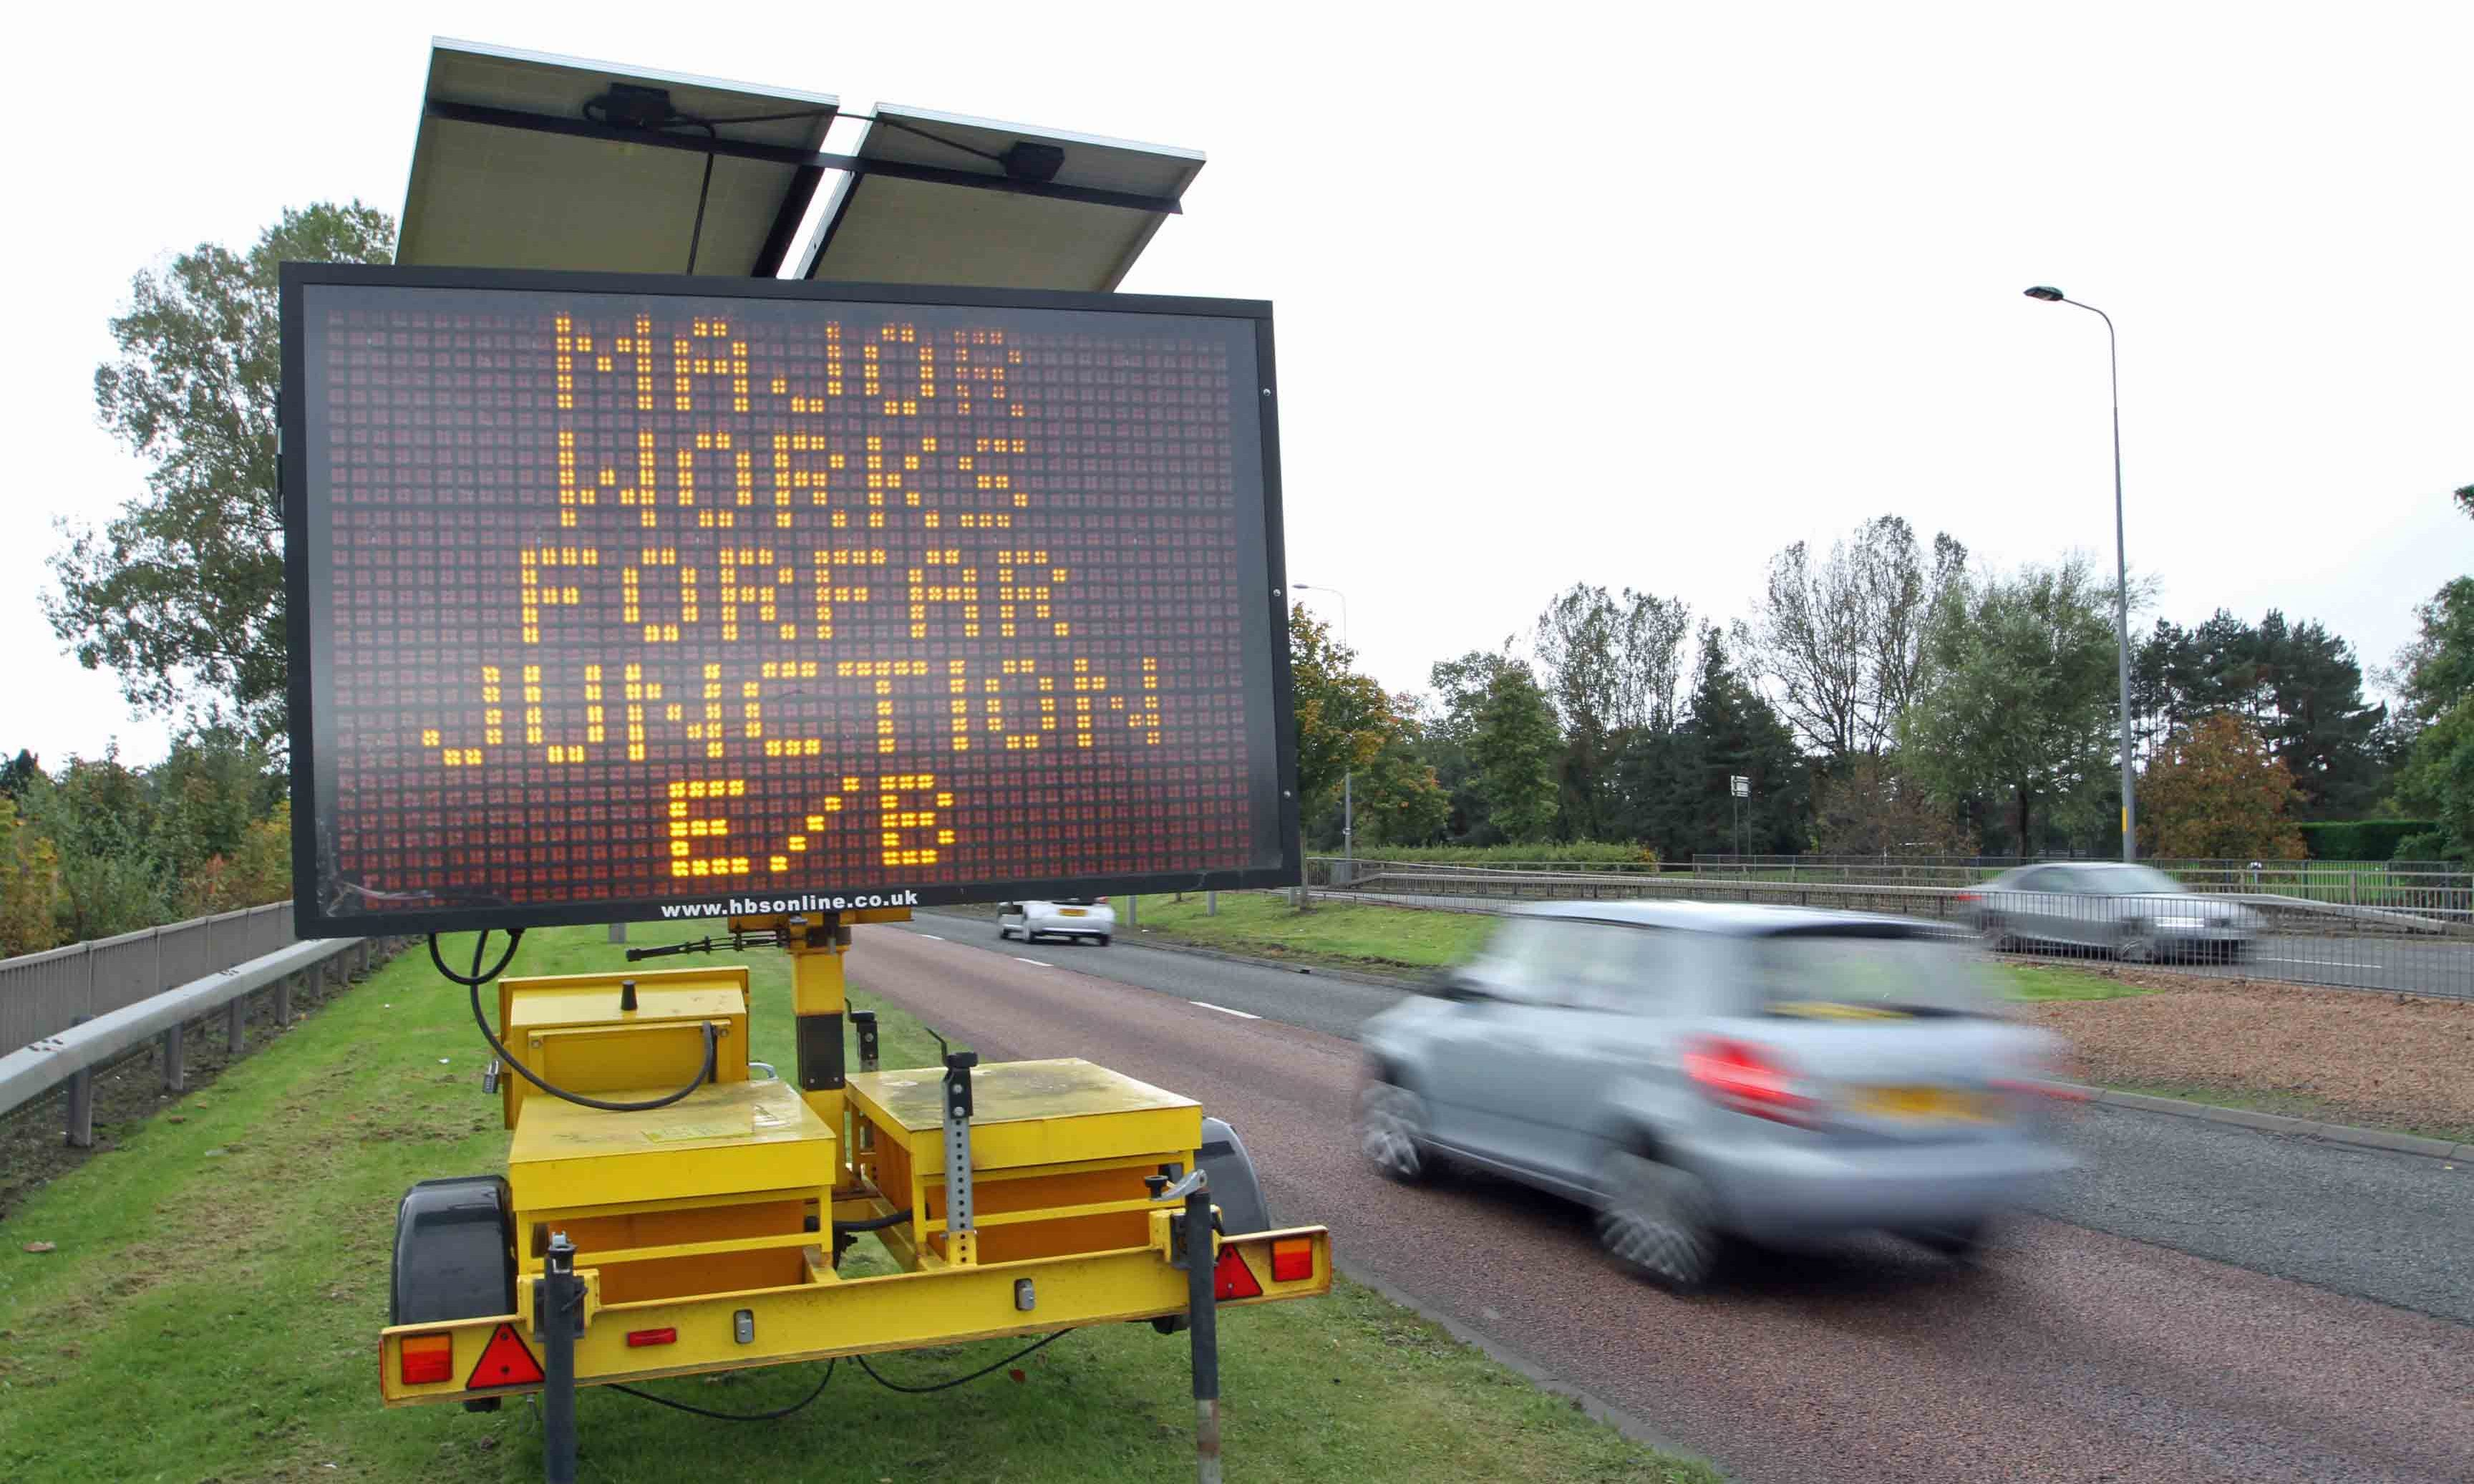 Disruption warning for Dundee residents as Kingsway works planned ...